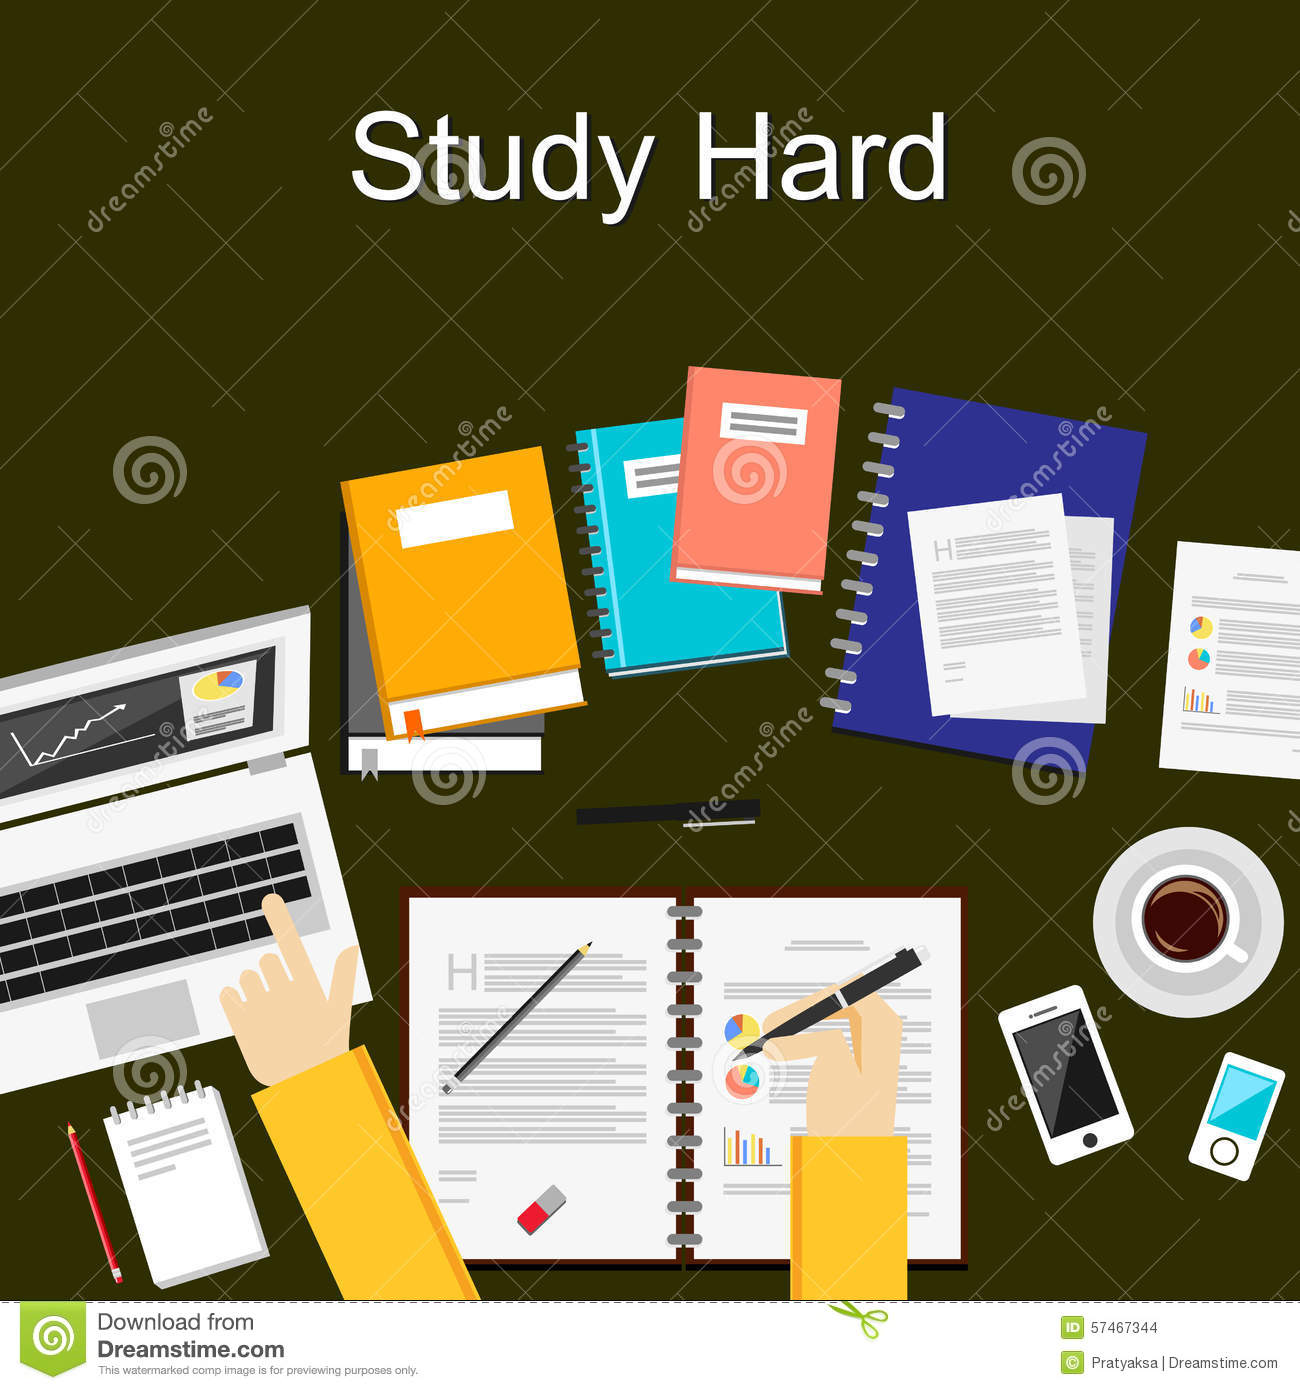 dissertation reports supply chain management Managementparadisecom – looking for free mba project reports on supply chain management look no further, free download & upload supply chain management projects for mba's at management paradisecom an online portals for mba students & professionals.